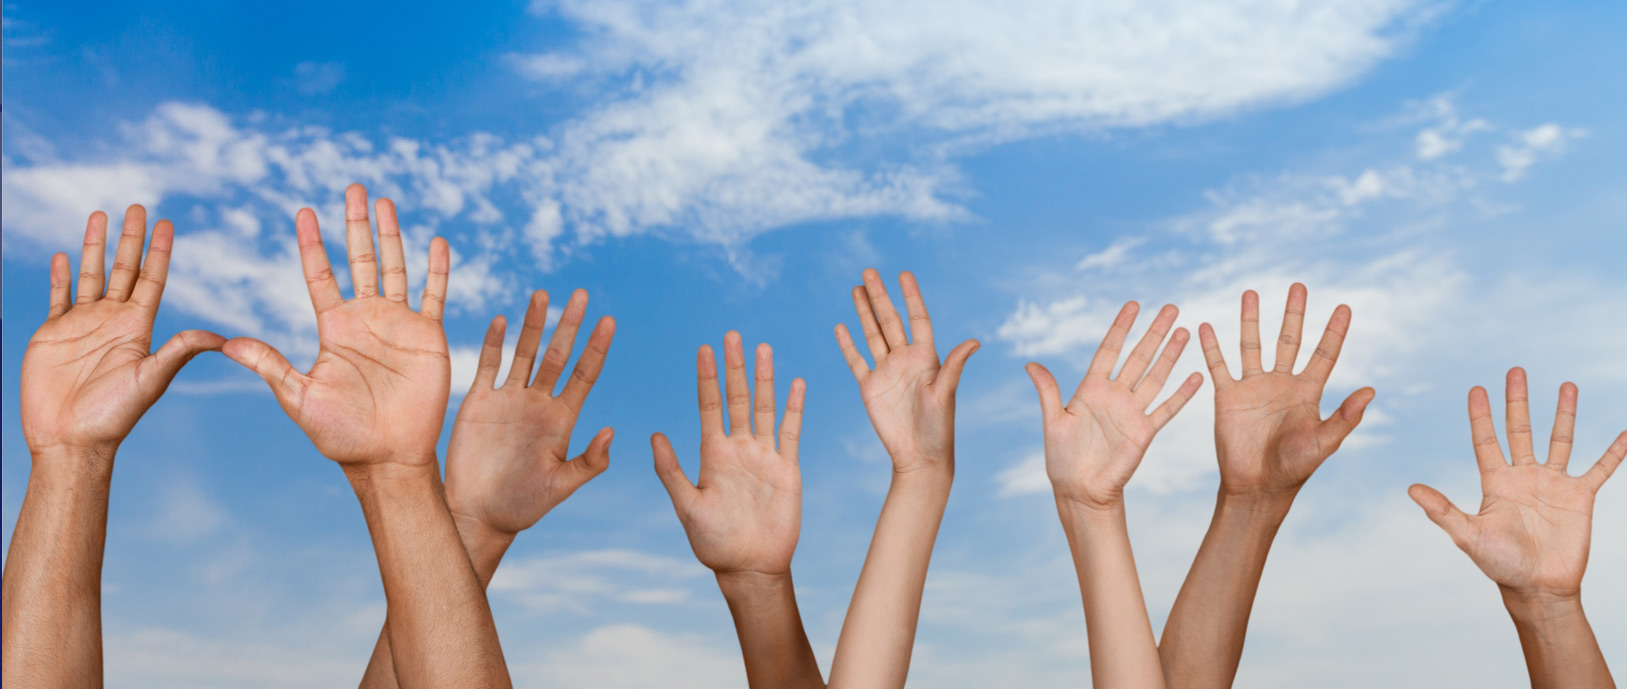 Photo of four pairs of hands in the air and a blue sky with clouds in the background